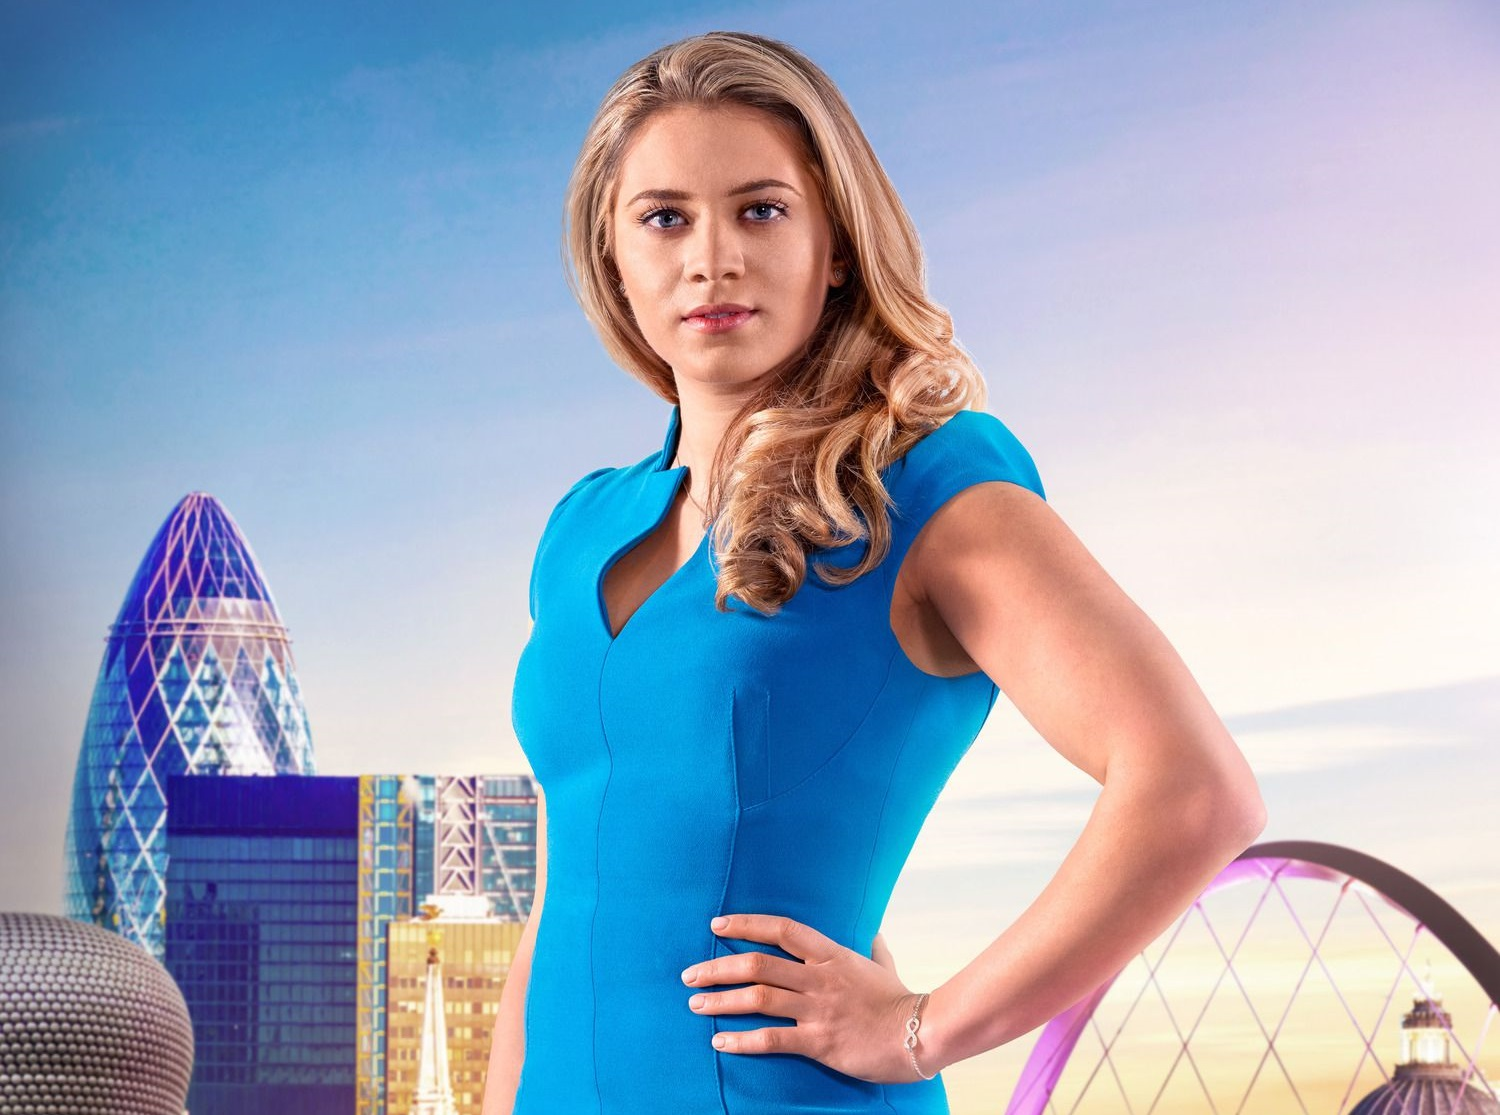 How old is The Apprentice's Sabrina Stocker and what's her tennis events company called?